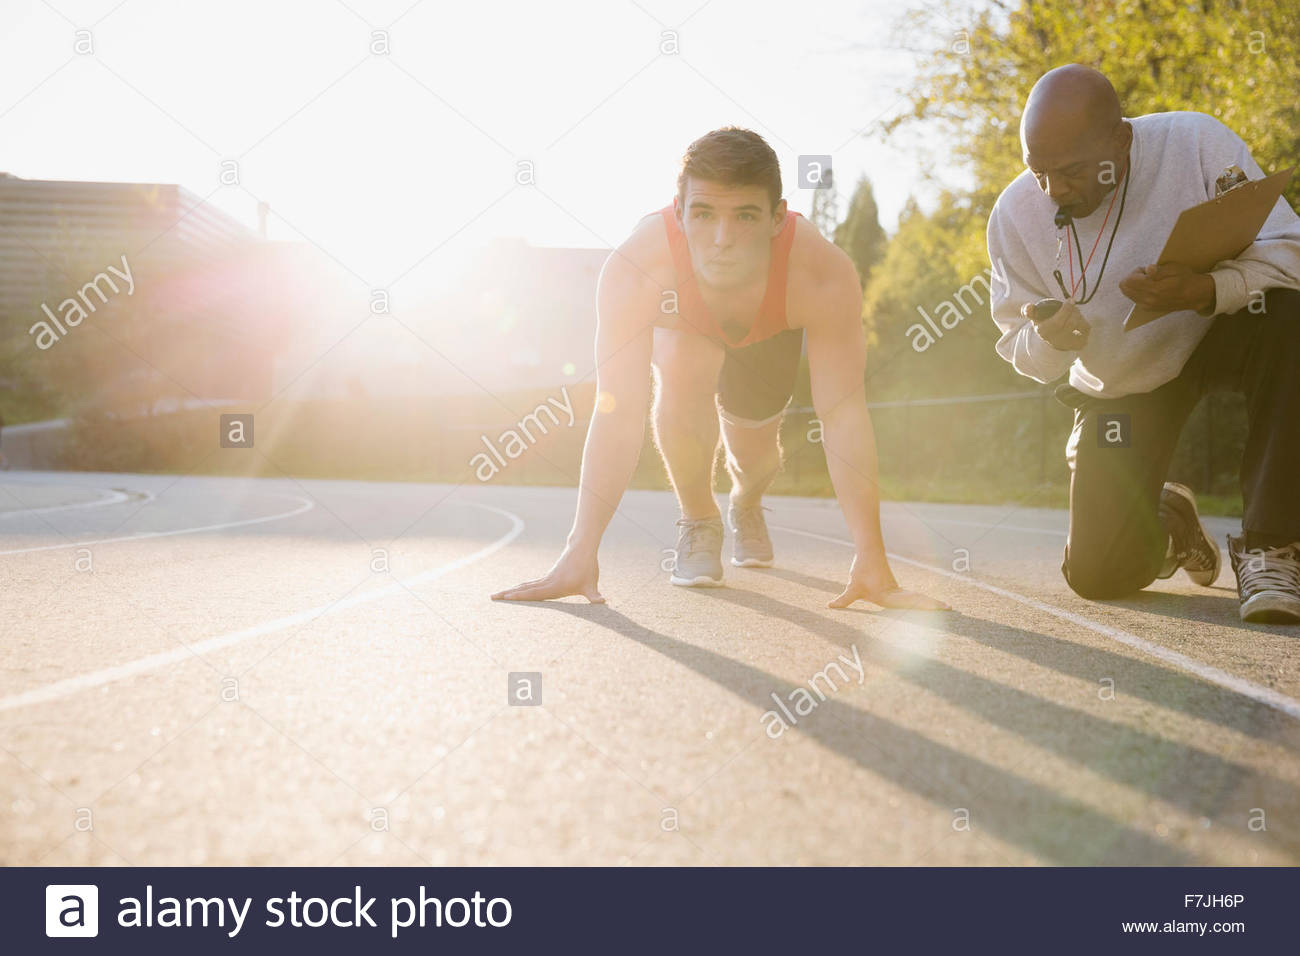 Coach timing high school track and field athlete - Stock Image